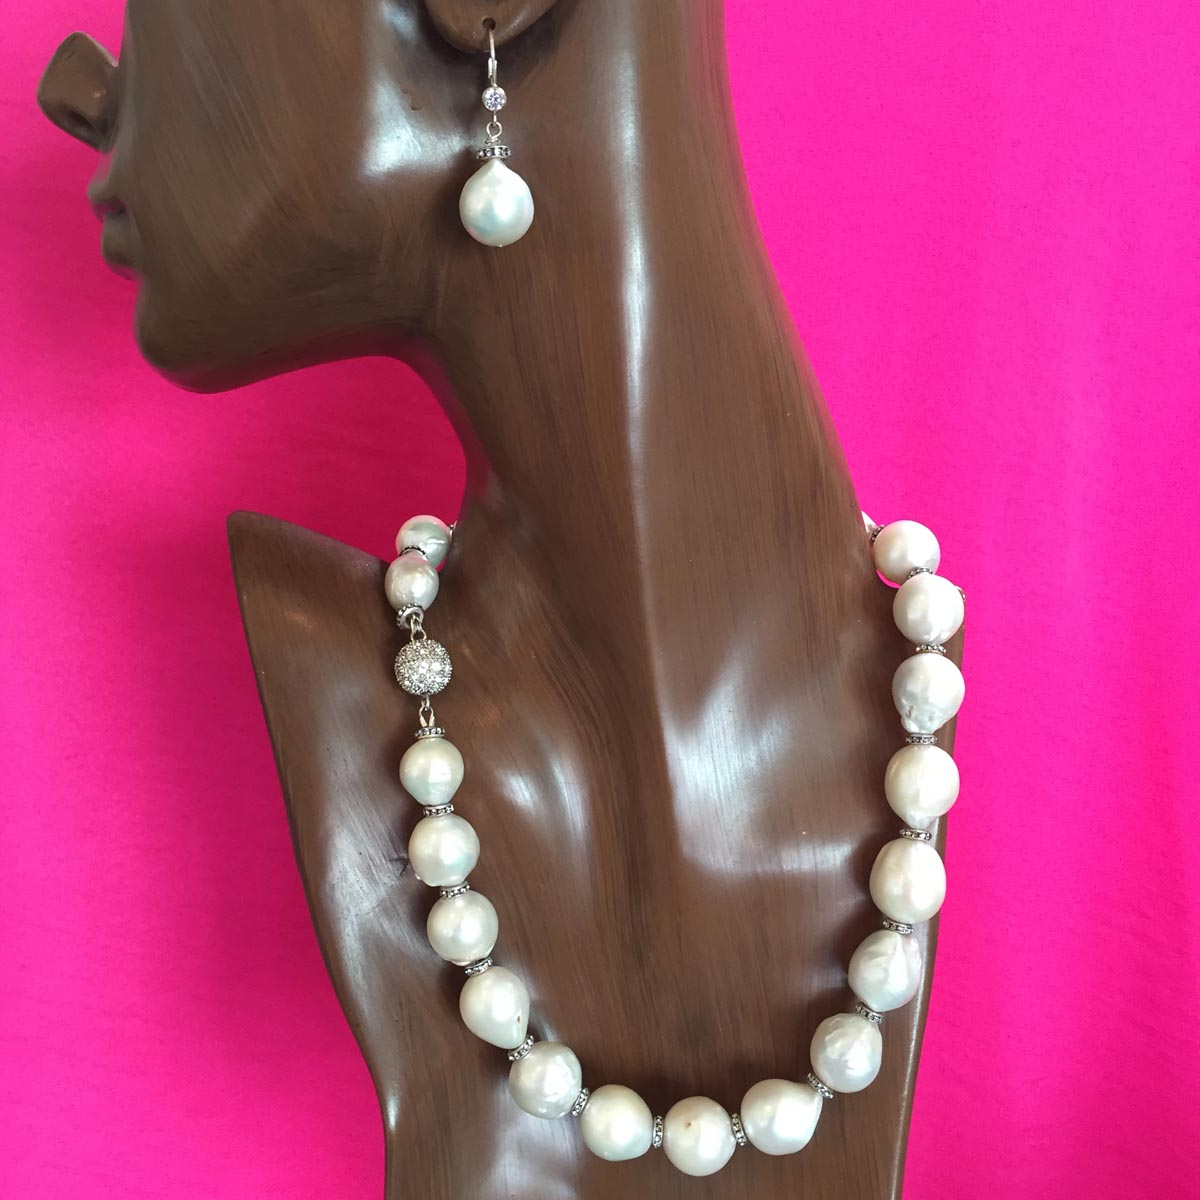 #6707 White Baroque Pearl Necklace with Silver and Rhinestone Spacers with Matching Earrings $2000